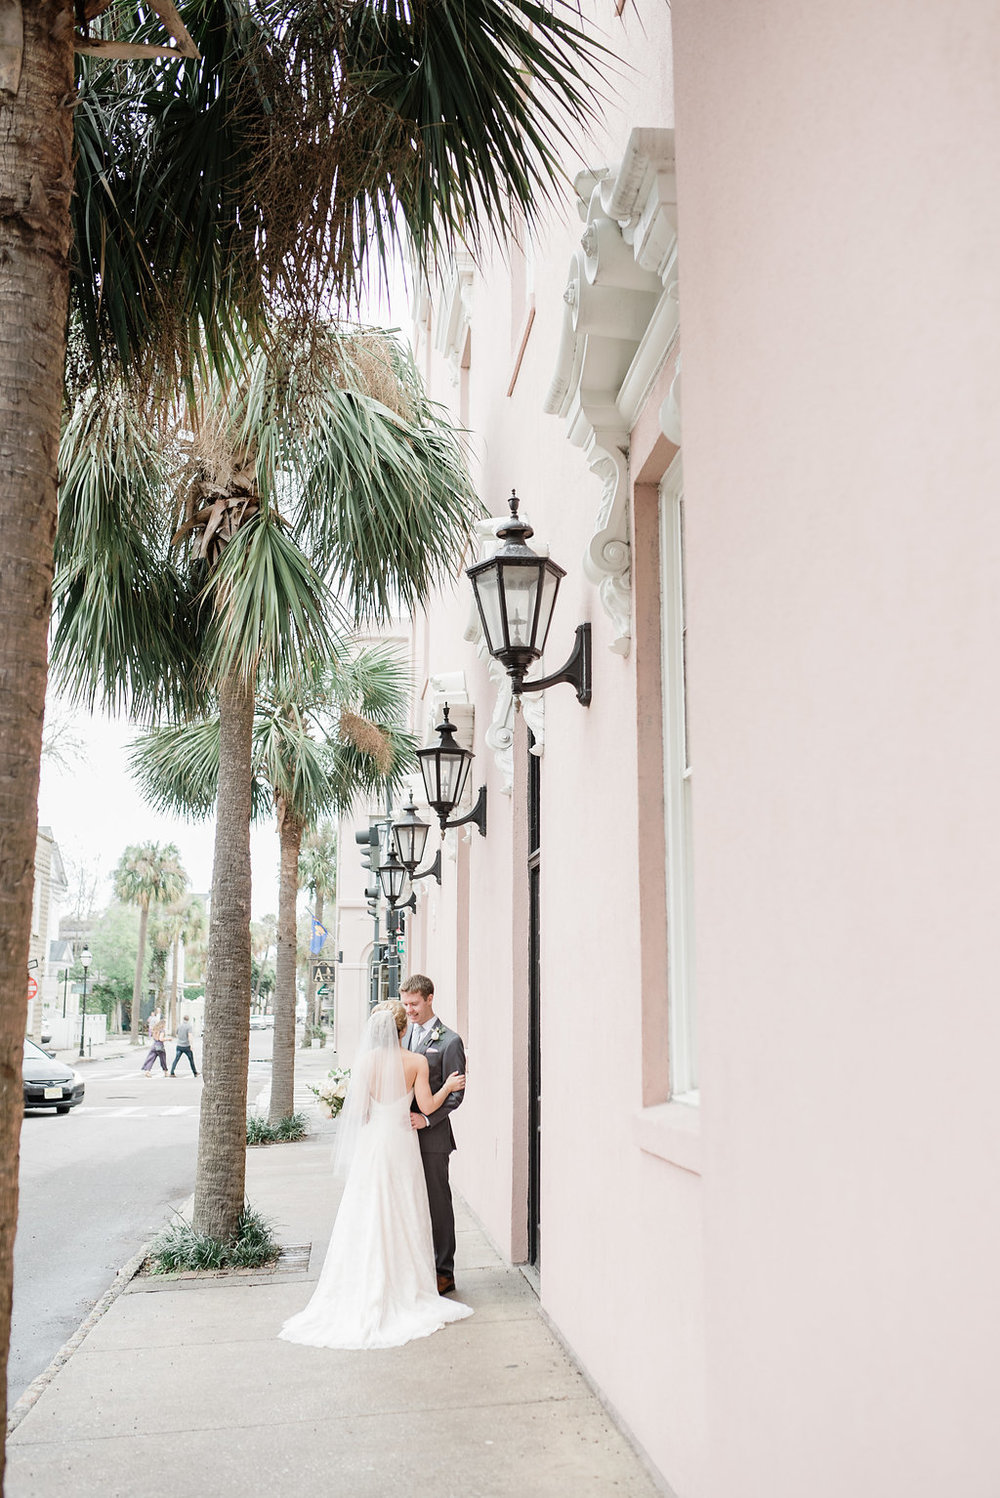 cannongreenweddingcharleston-abby&garett-rachelcraigphotography-0622.jpg